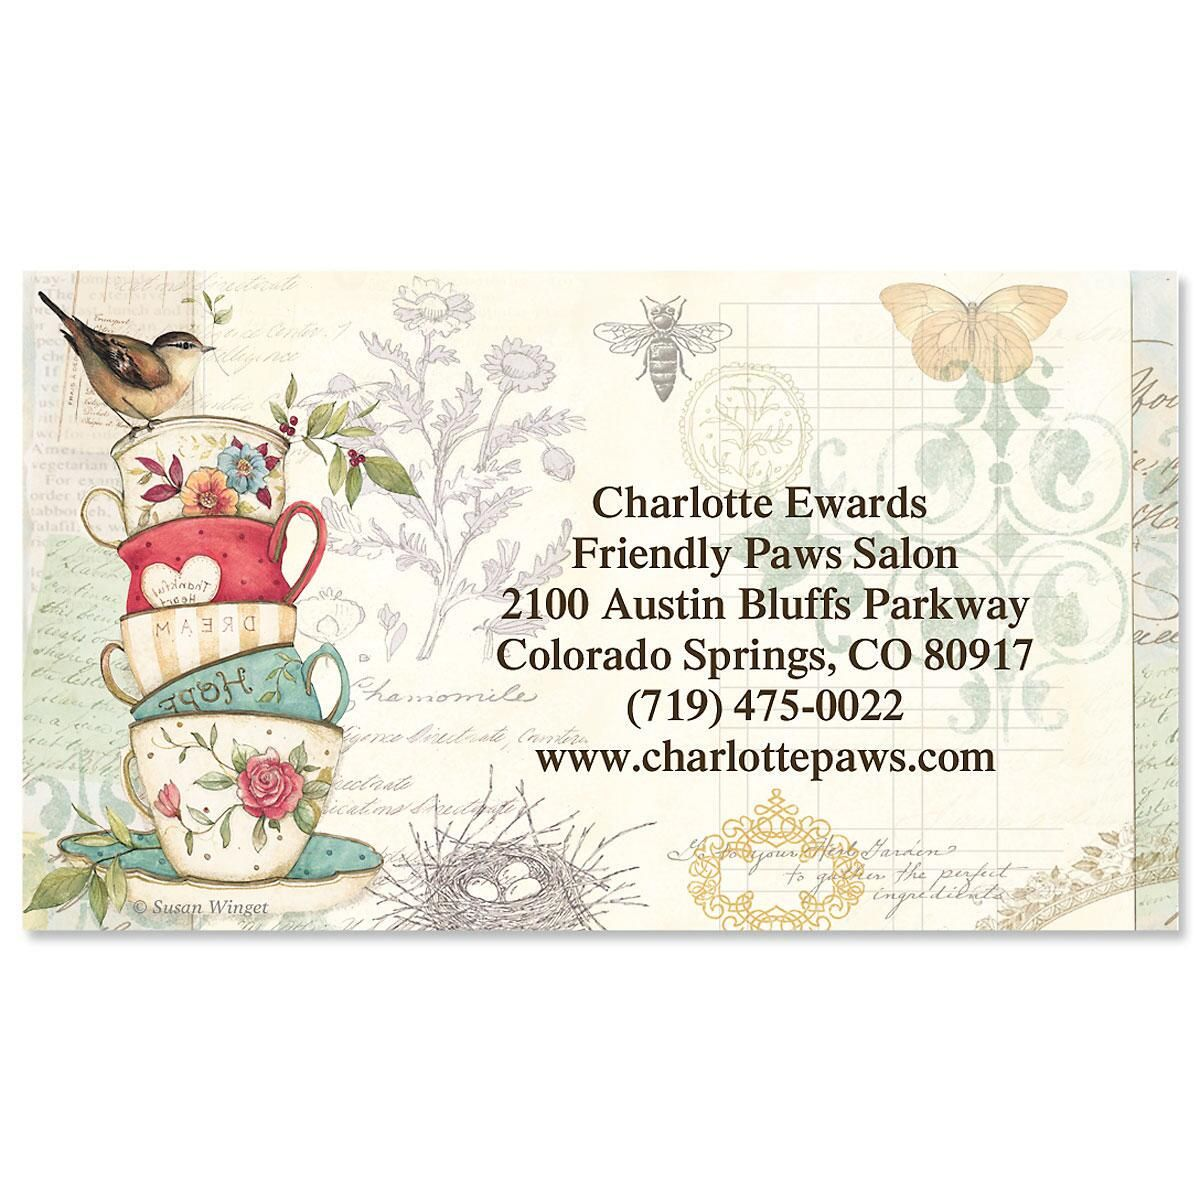 Teacups Business Cards | Colorful Images